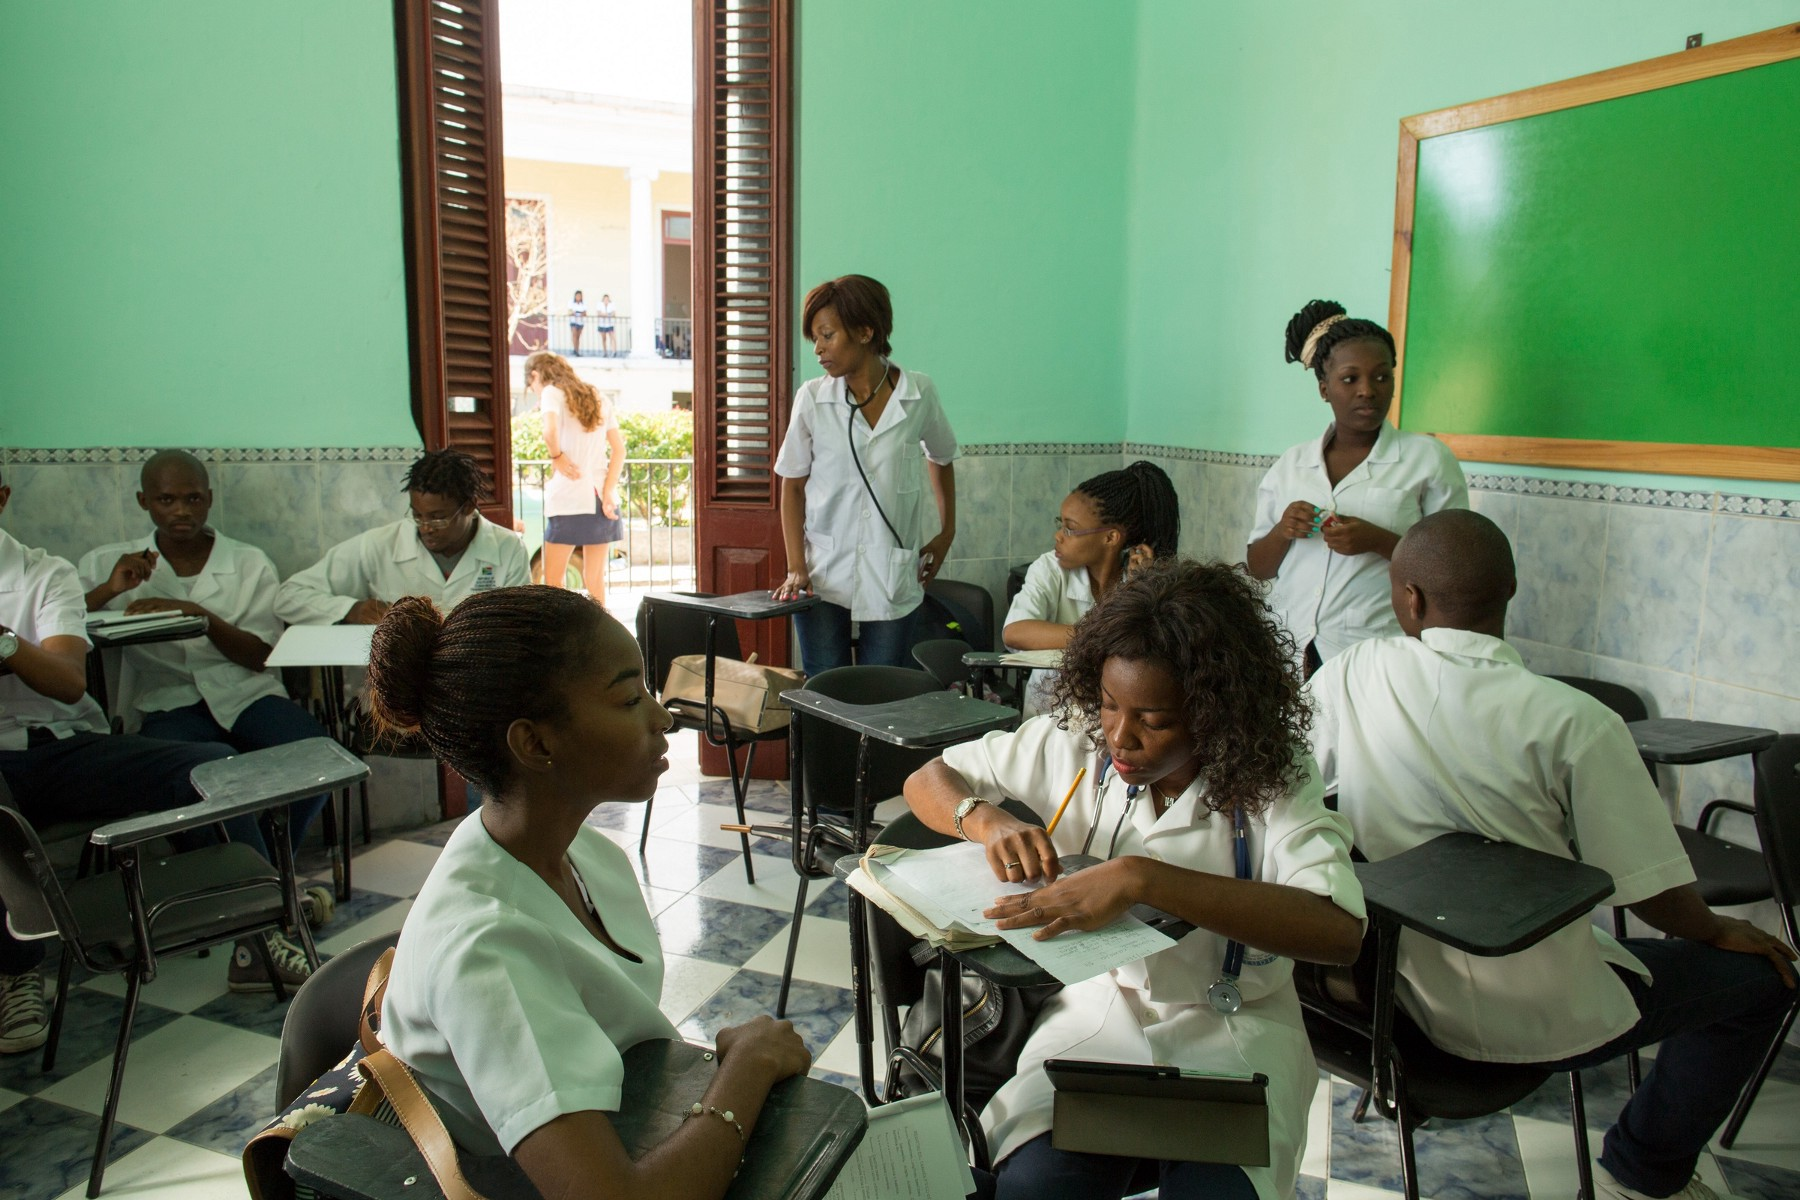 Cuban Medical Students, Havana